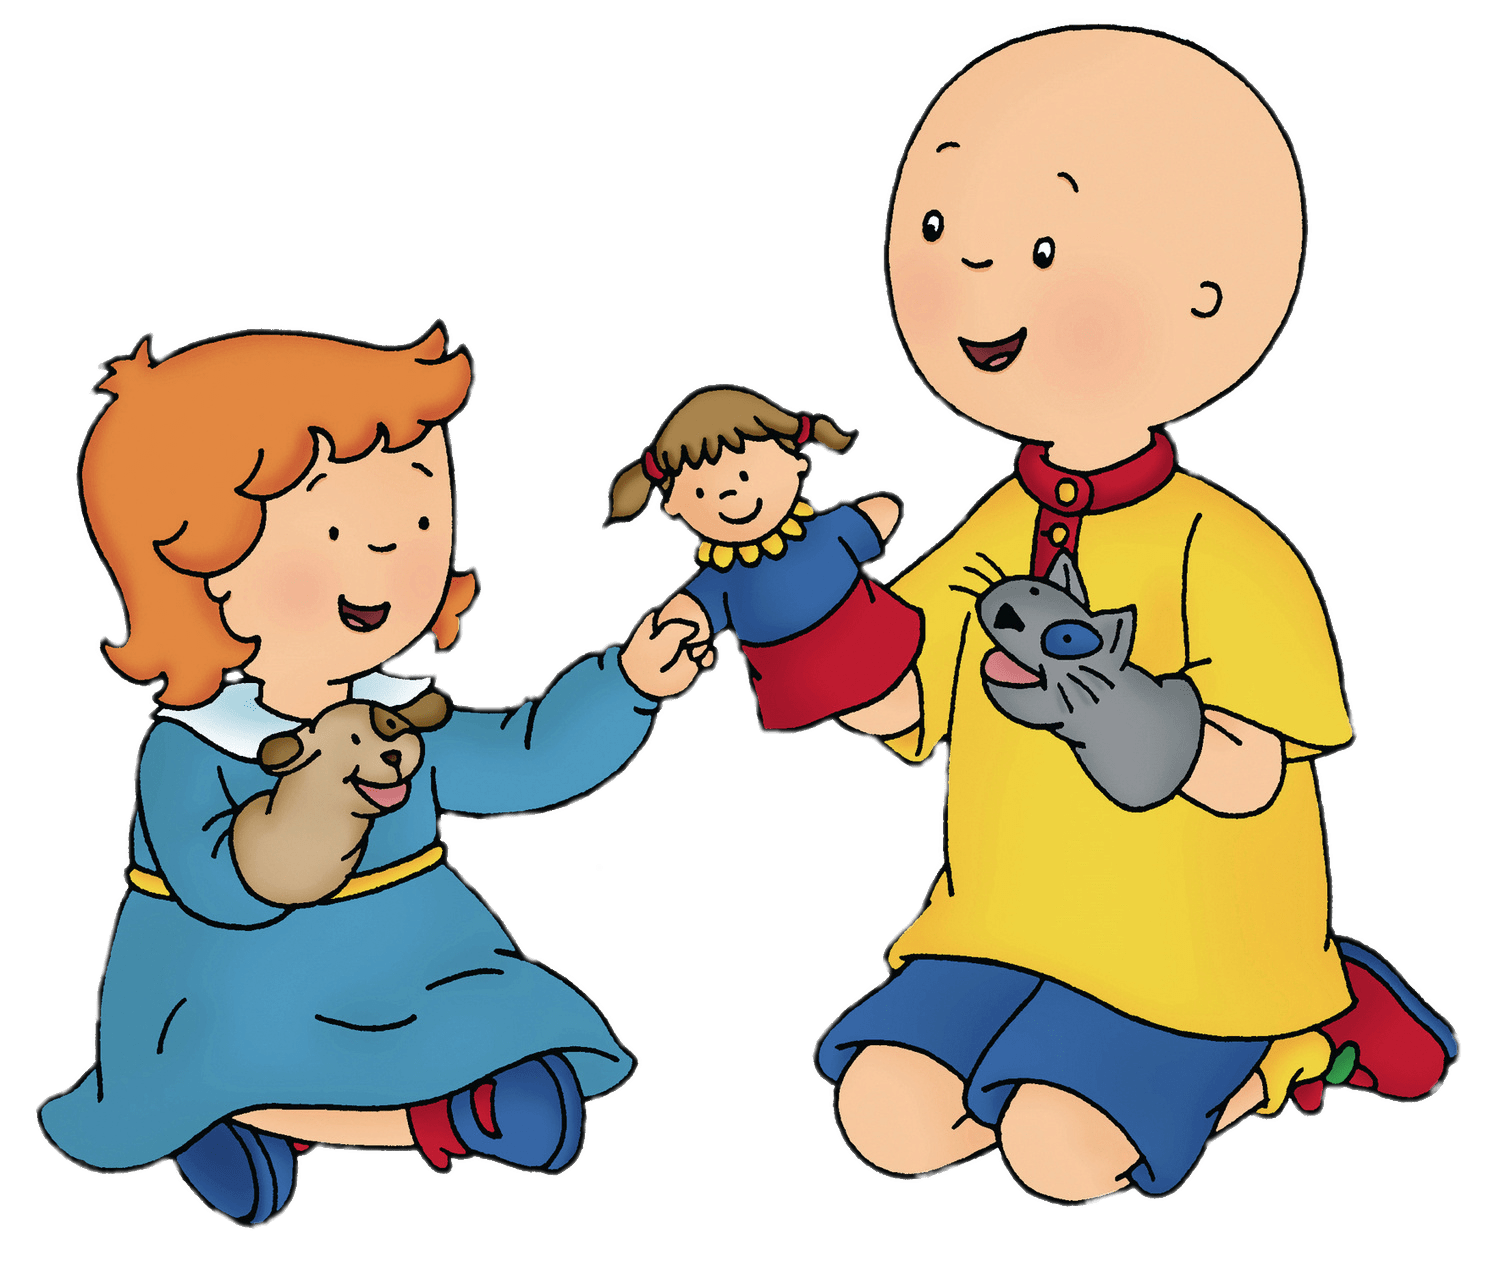 Napkin clipart cloth napkin. Napkins caillou magic playhouse